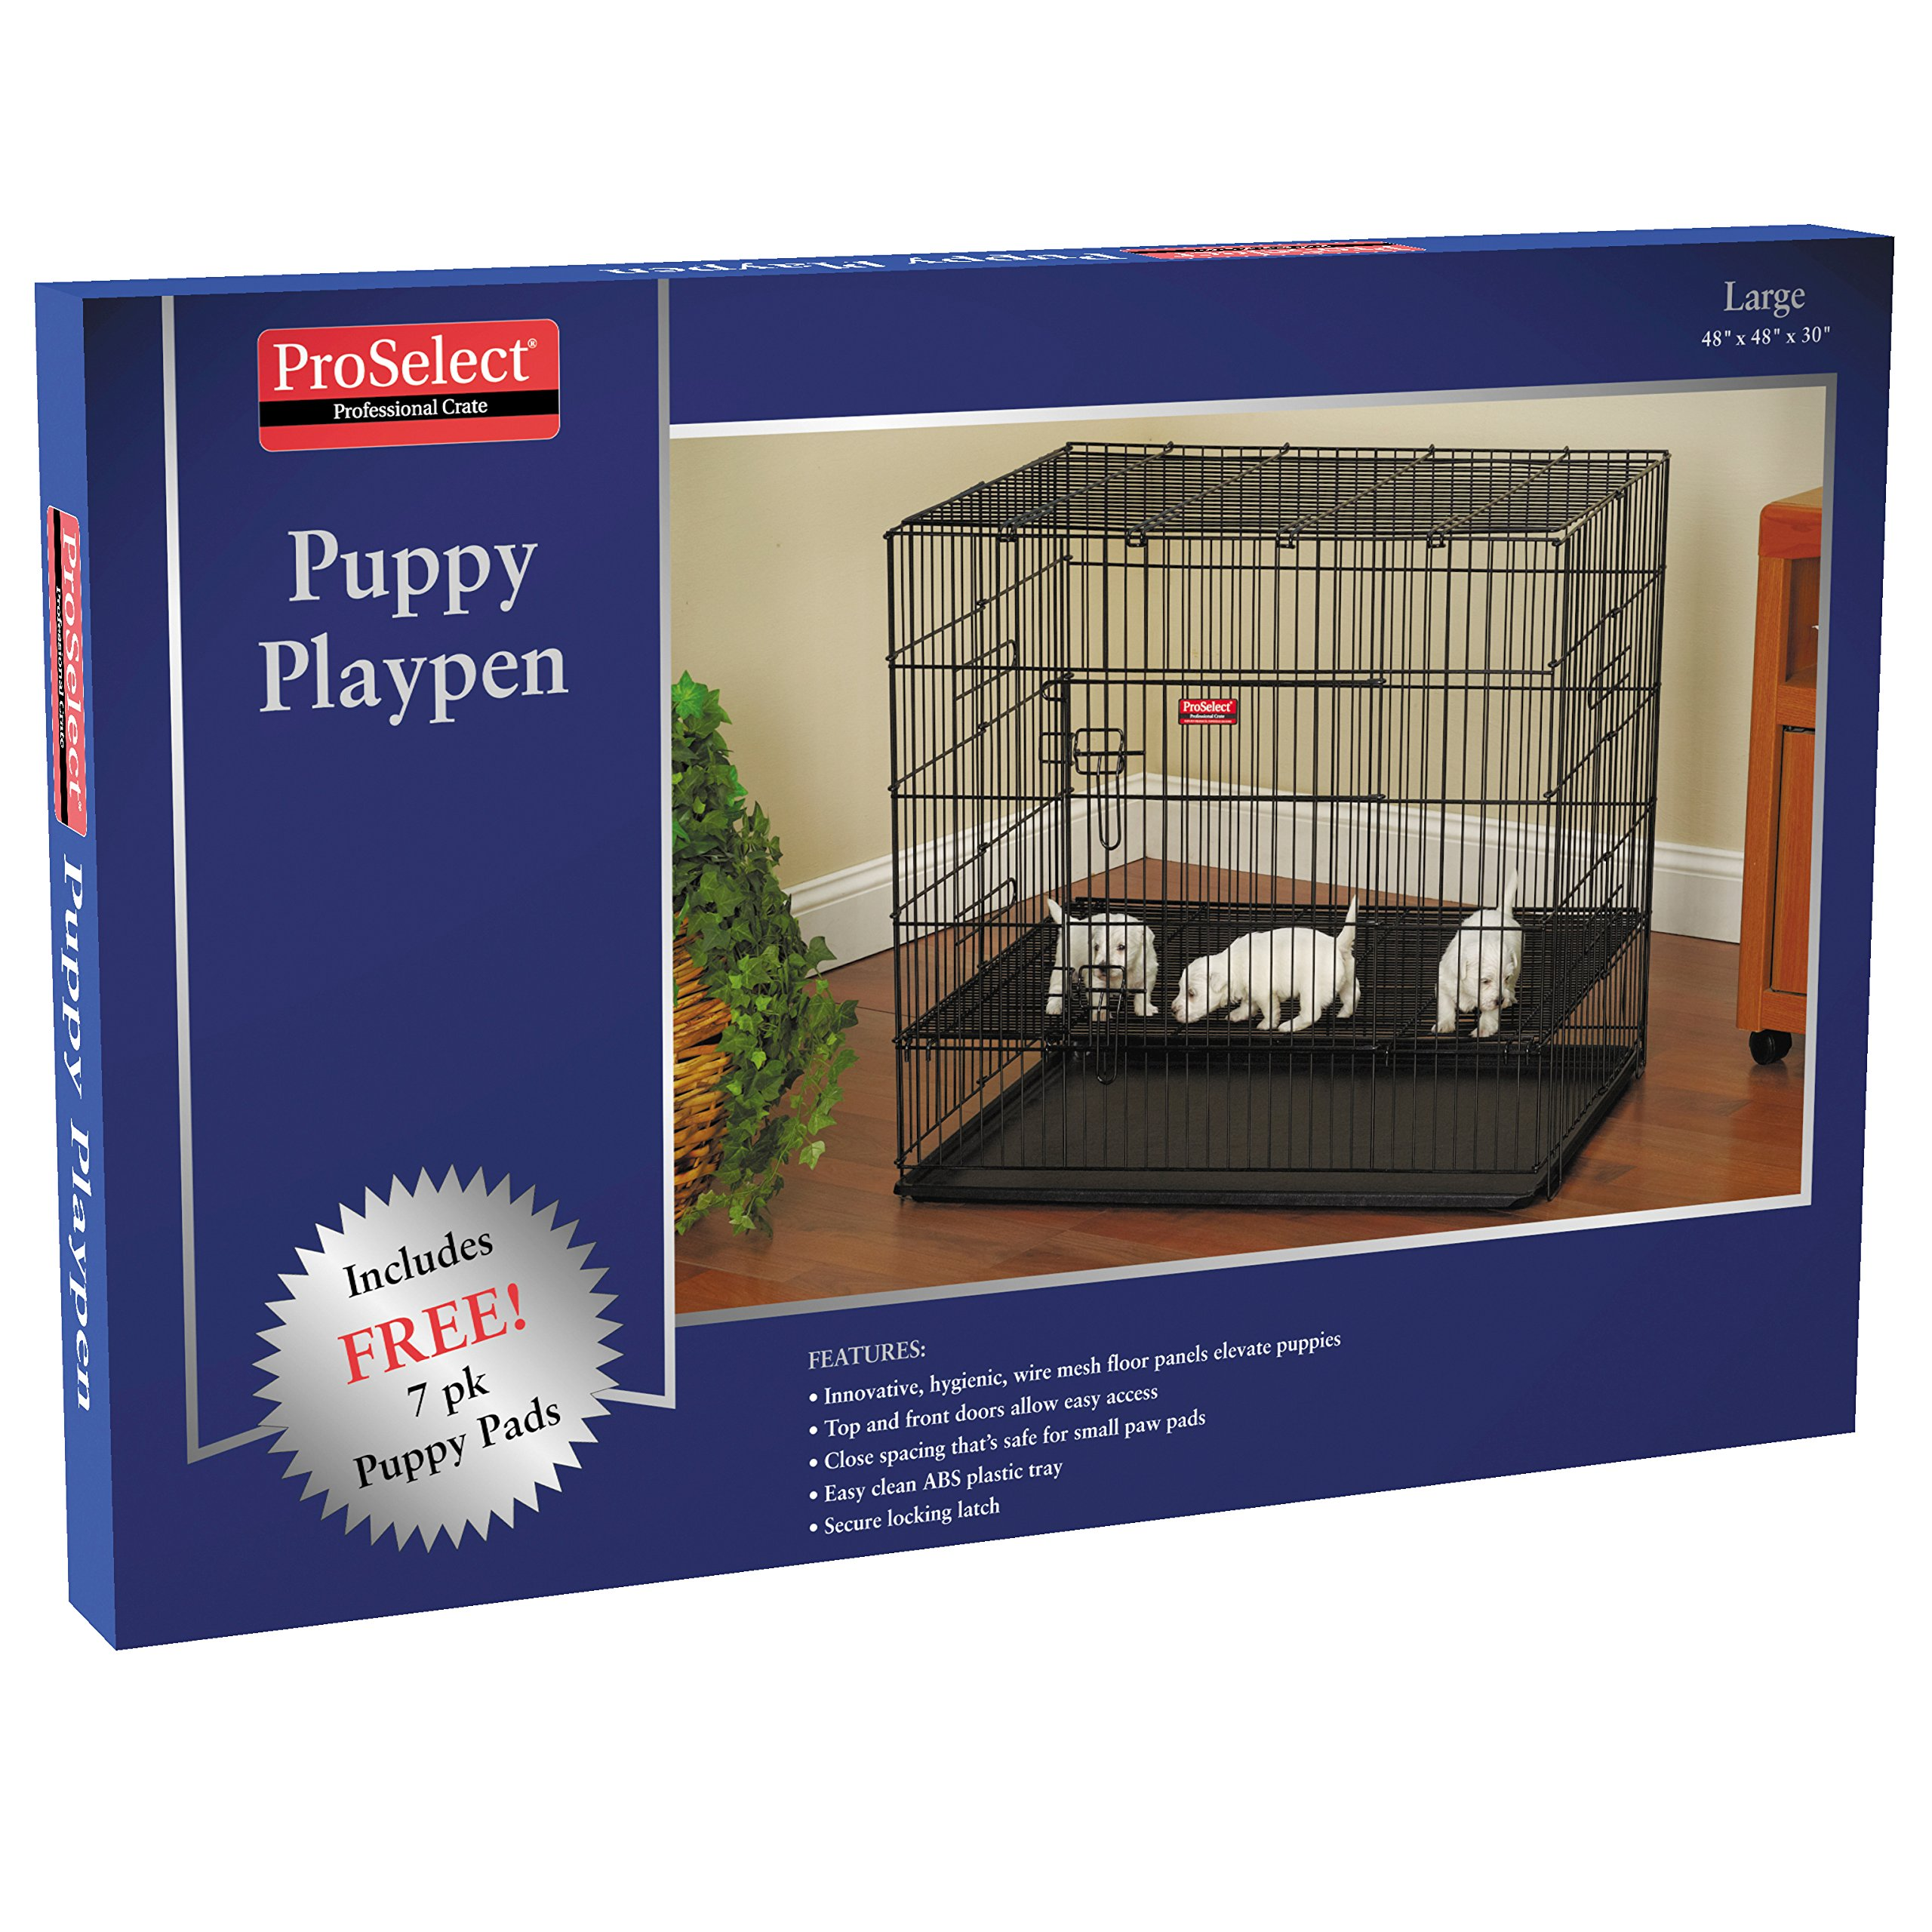 ProSelect Puppy Playpens with Plastic Pan, Black 36''L x 24''W x 30''H; Medium, Black 36''L x 36''W x 30''H; Large, Black 48''L x 48''W x 30''H